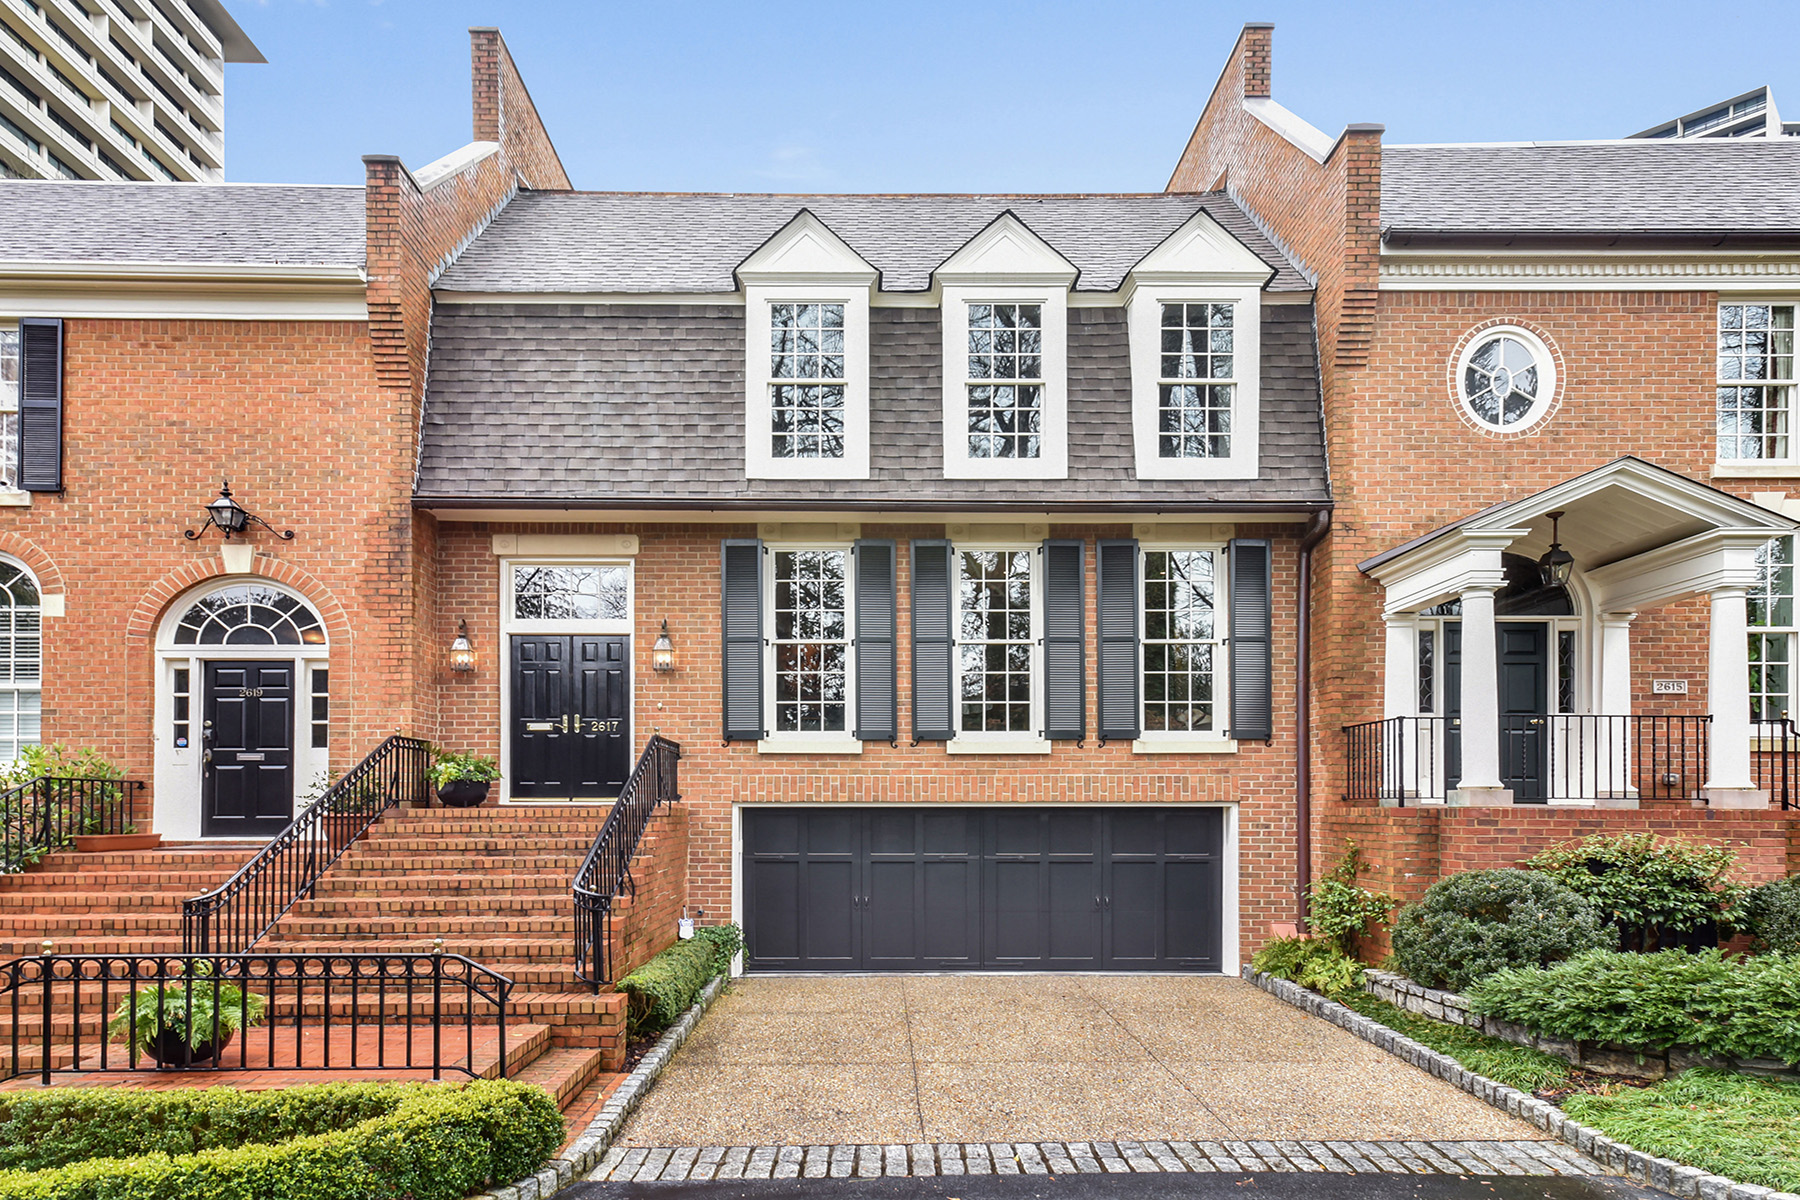 Townhouse for Sale at Stunning Buckhead Townhome 2617 Peachtree Rd NE Atlanta, Georgia 30305 United States